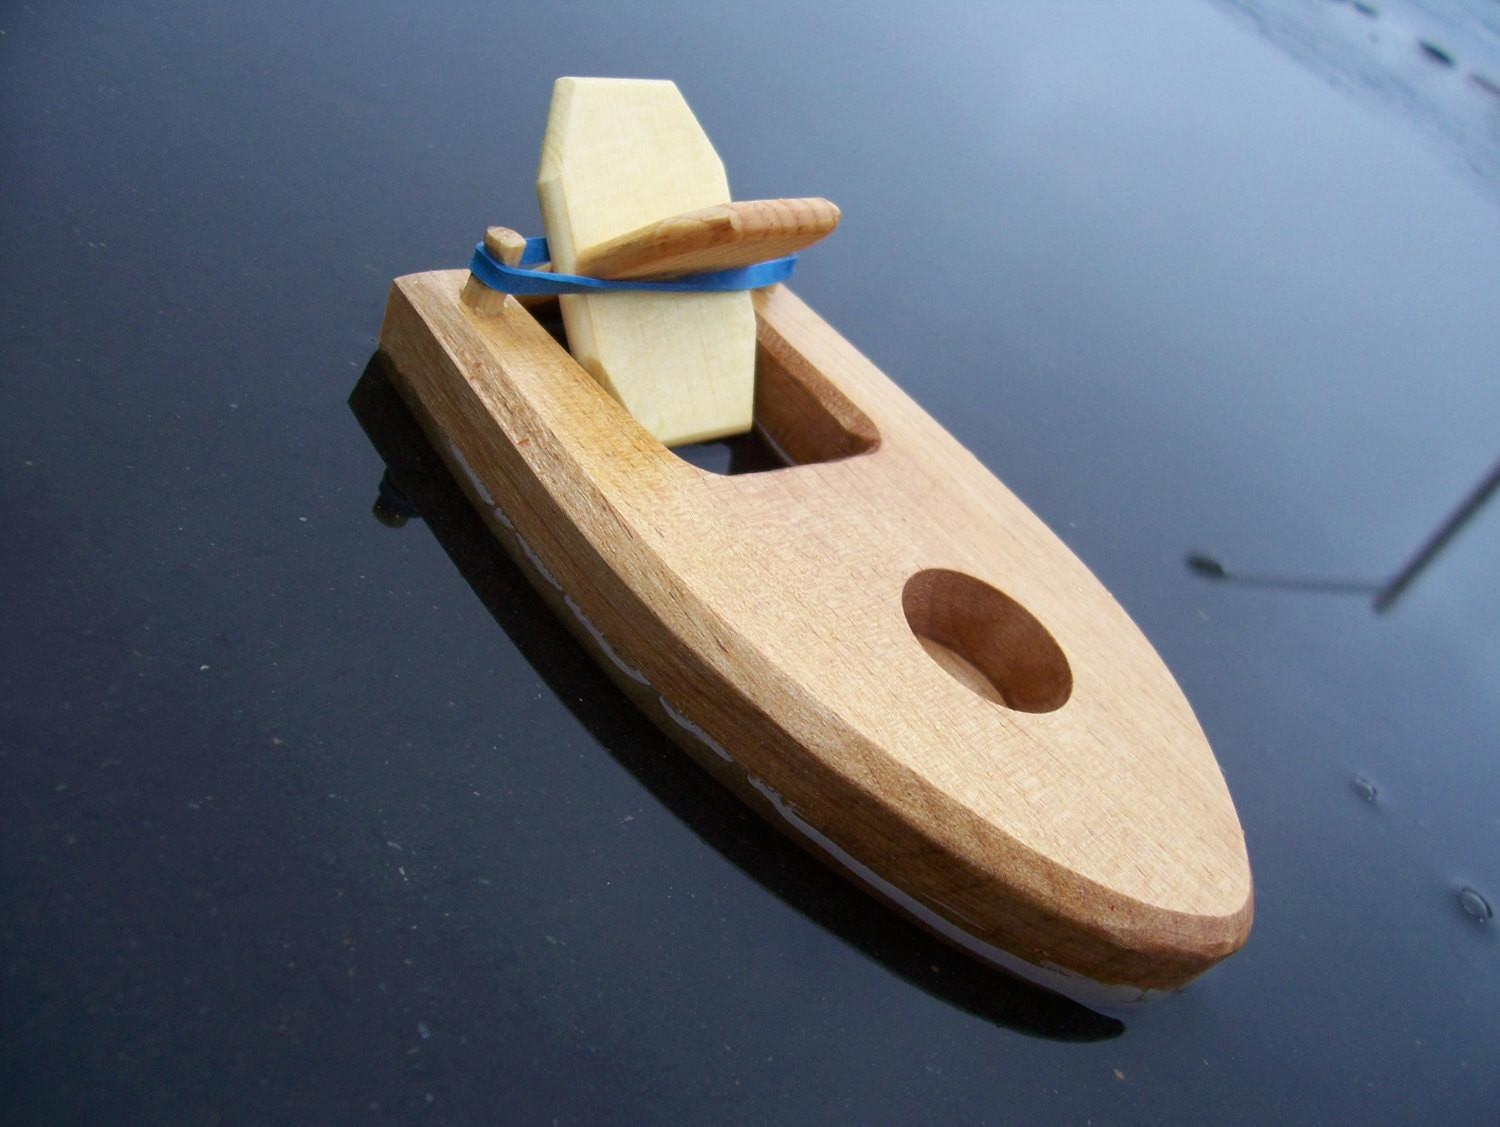 Toy Bathtub Boat Rubber Band Powered Paddle